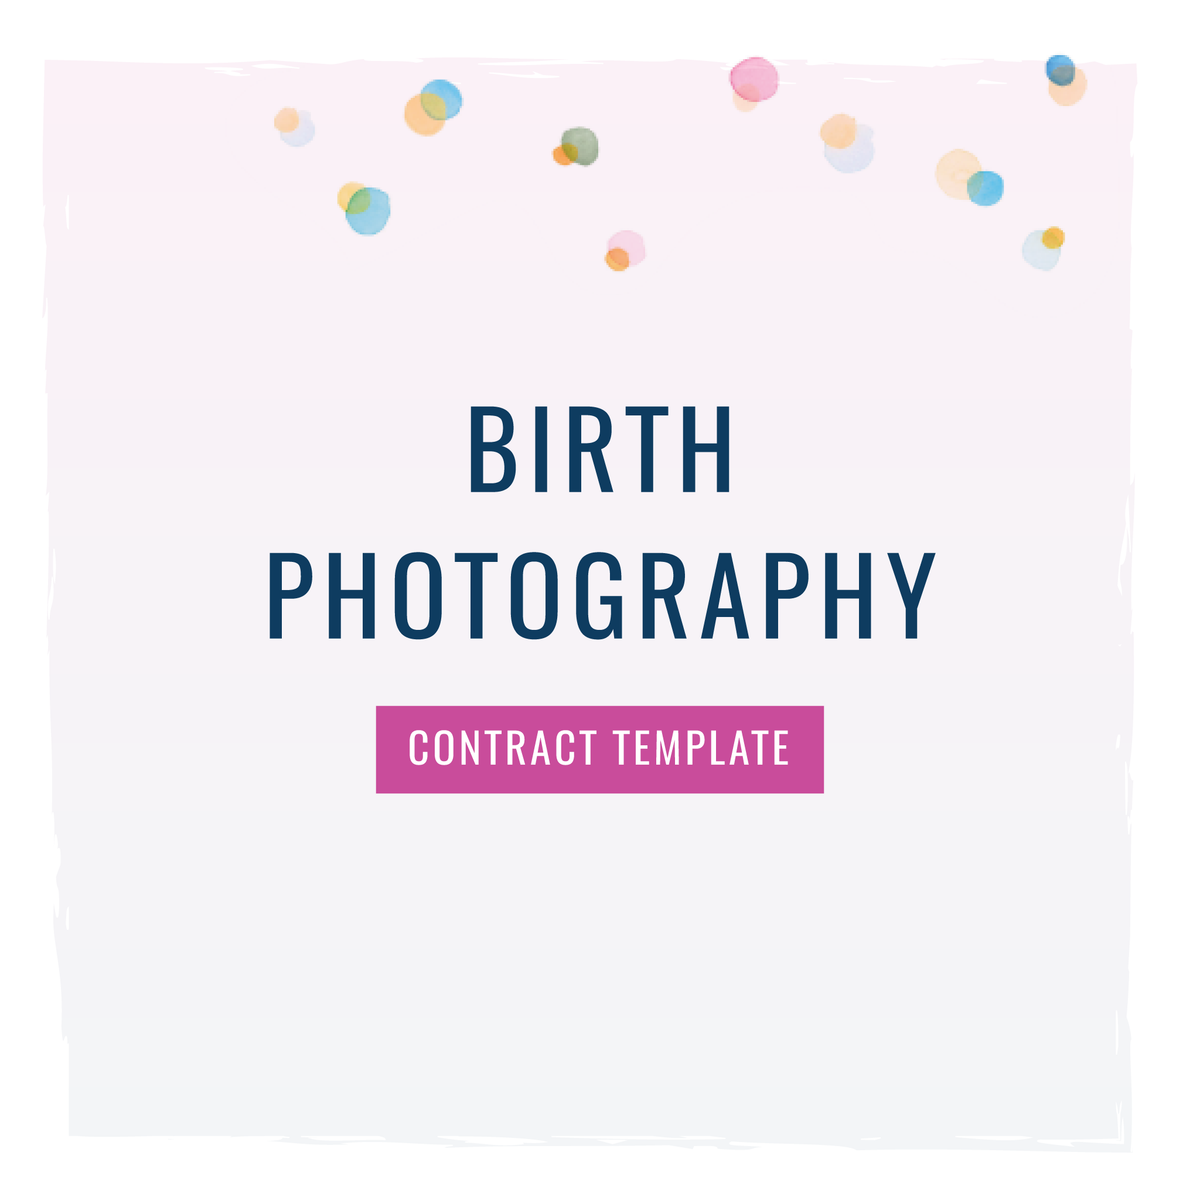 Birth Photographer Contract Template